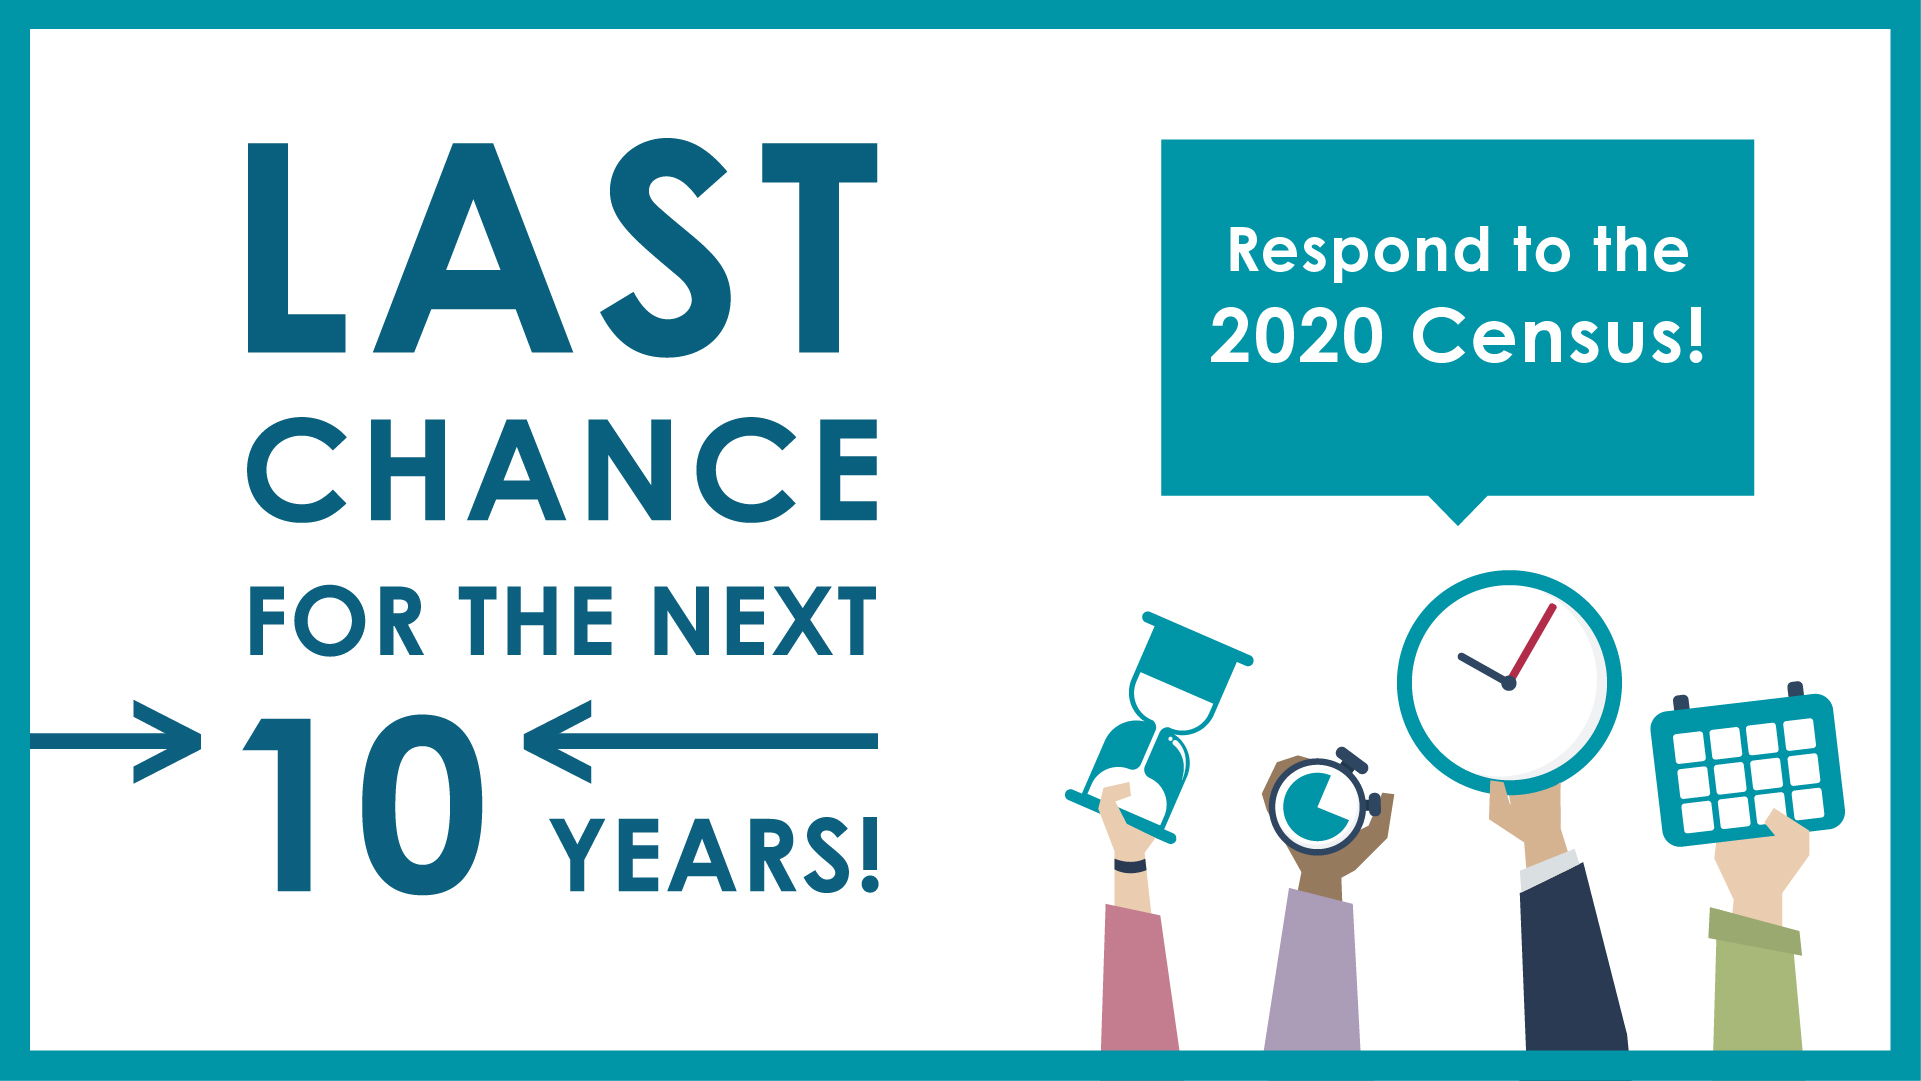 2020 Census - Have You Completed Yours?